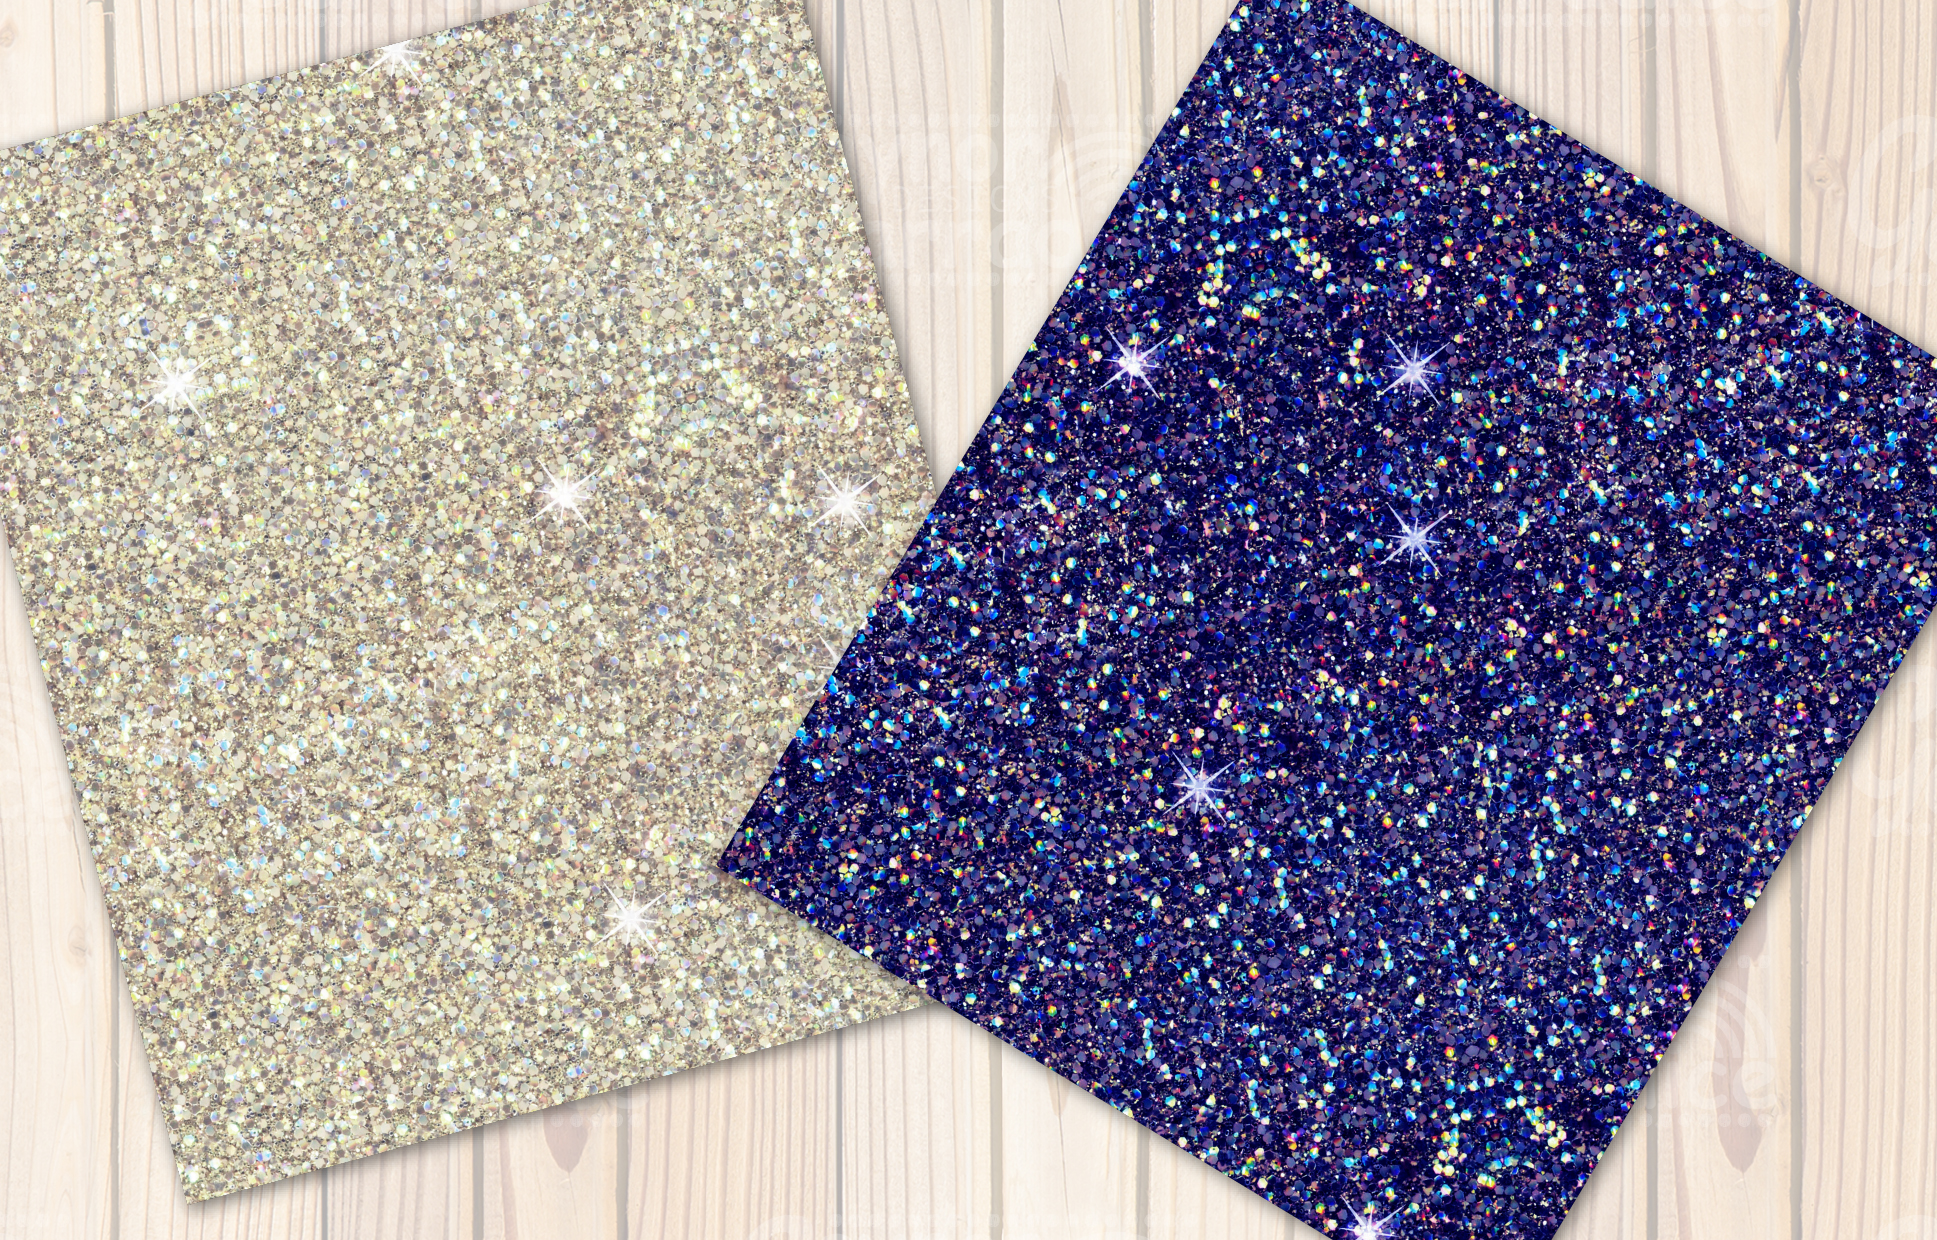 Moonlight glitter collection example image 2